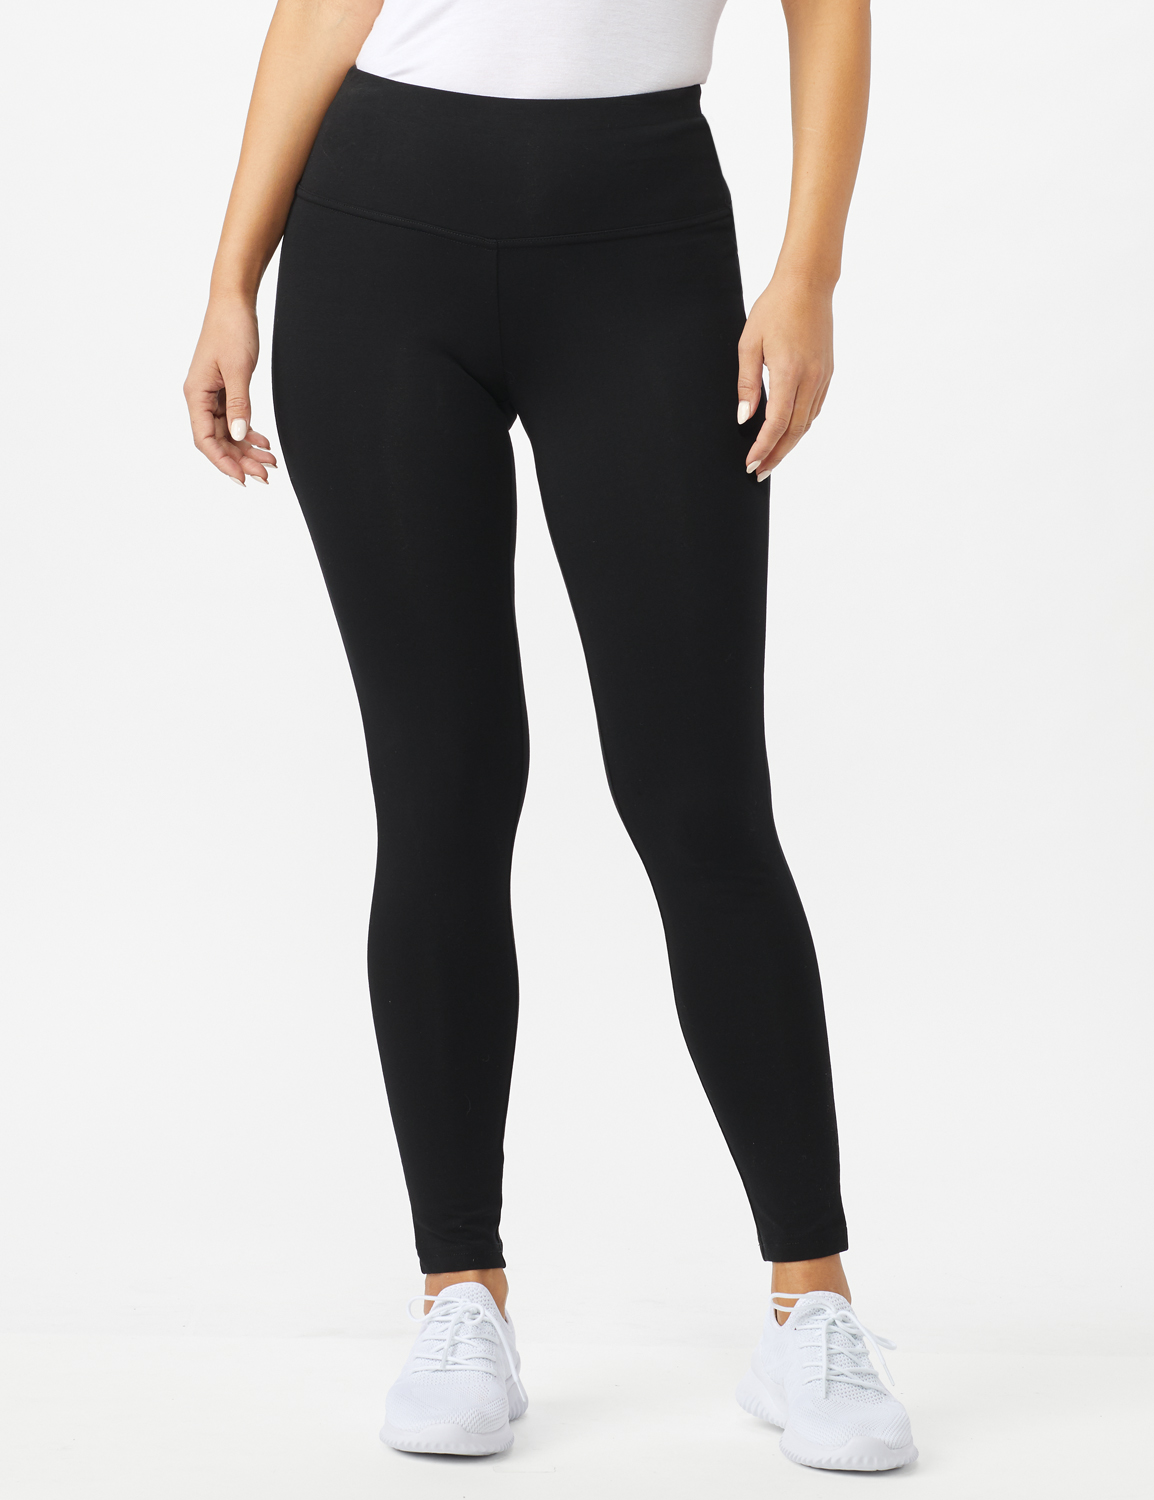 Tummy Control Legging -Black - Front